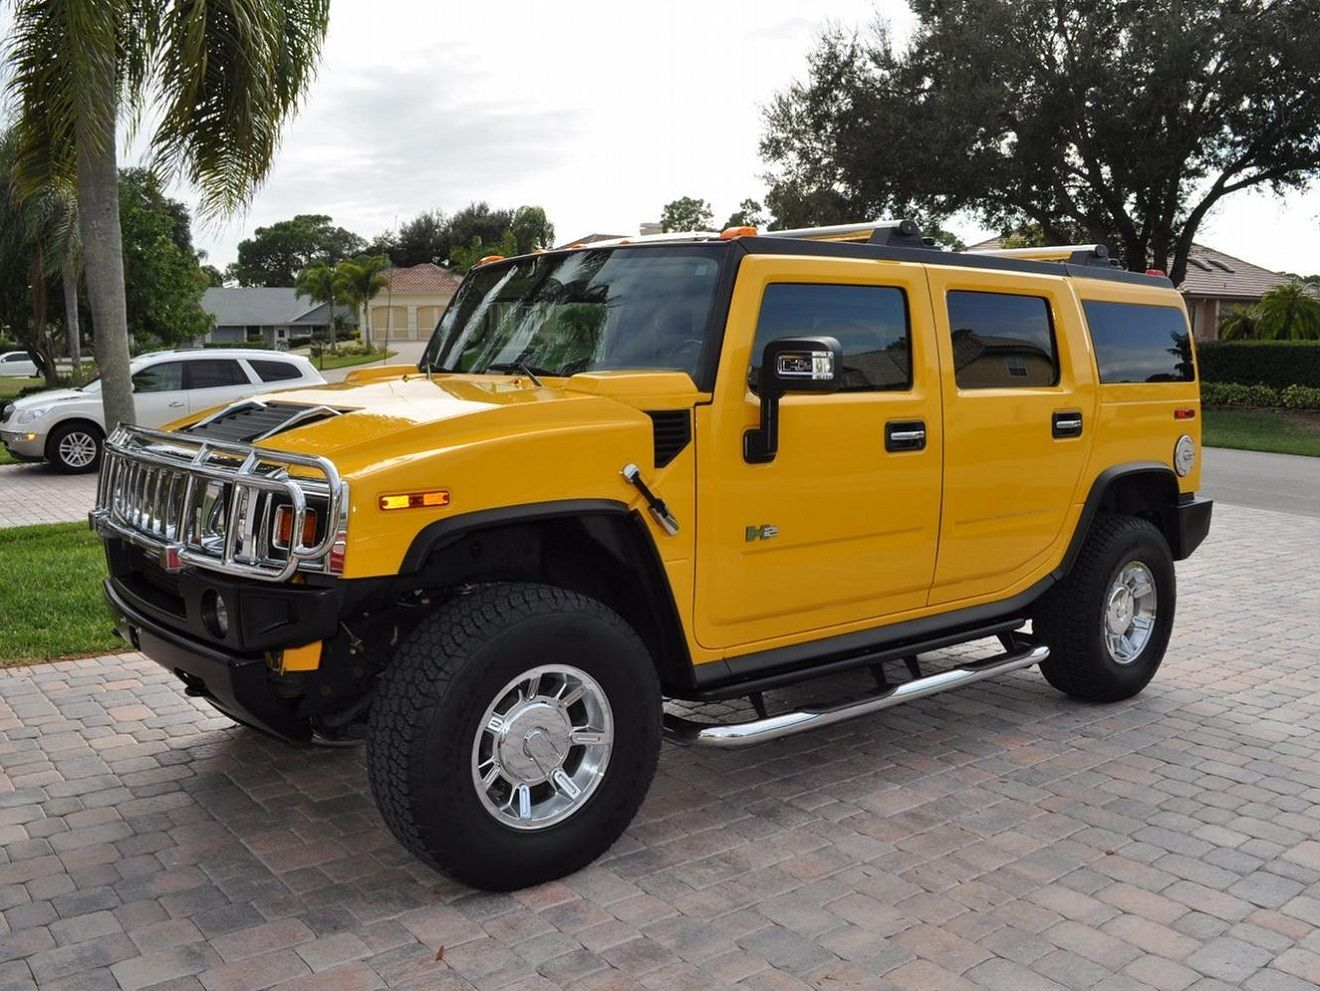 9 Hummer H9 Performance | Car9/WM.SAKEN COMPANY ... | hummer h3 suv price